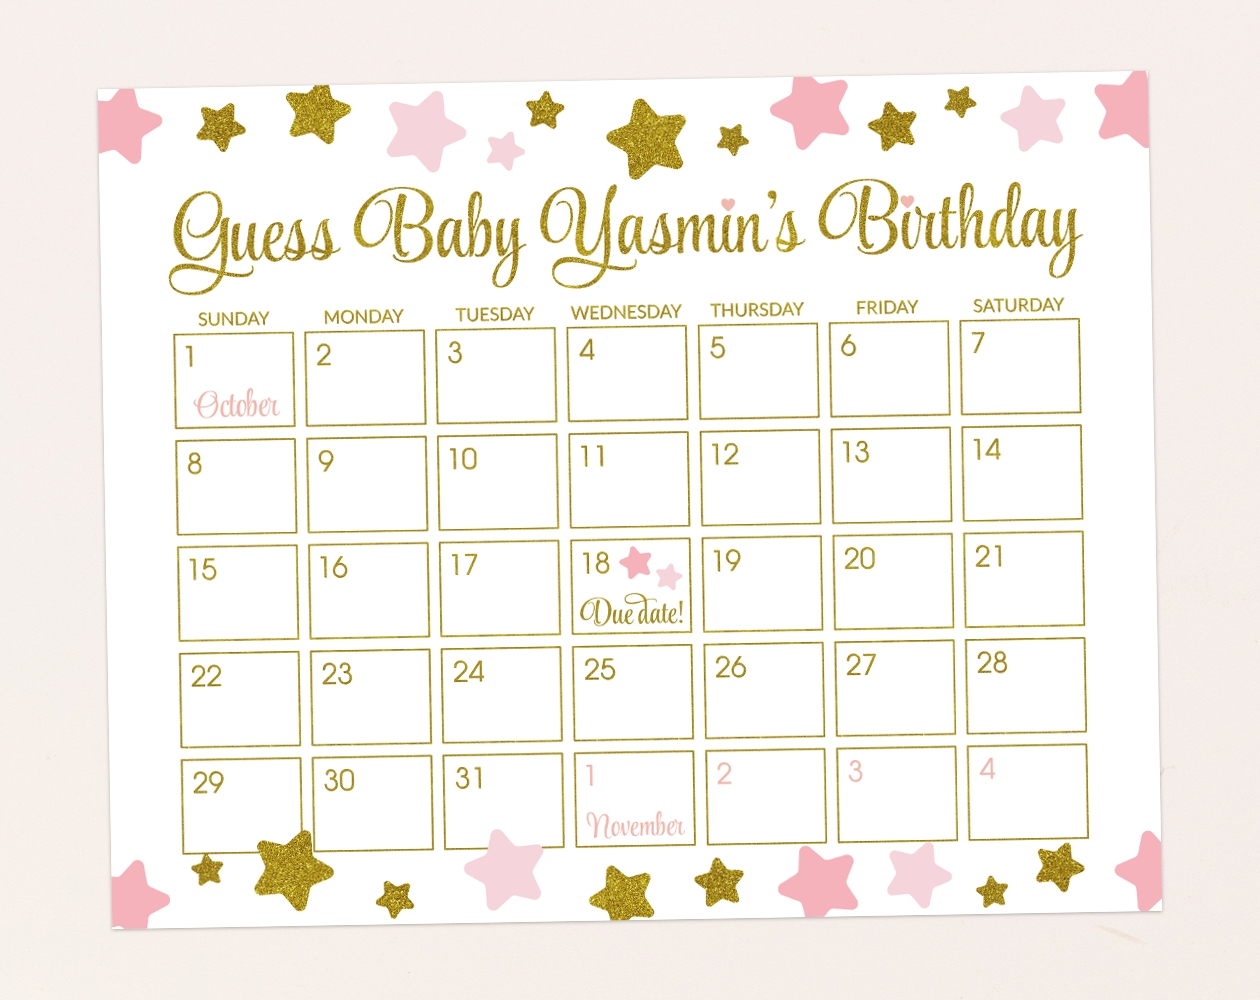 Guess The Date Babyparty   Calendar Template 2020